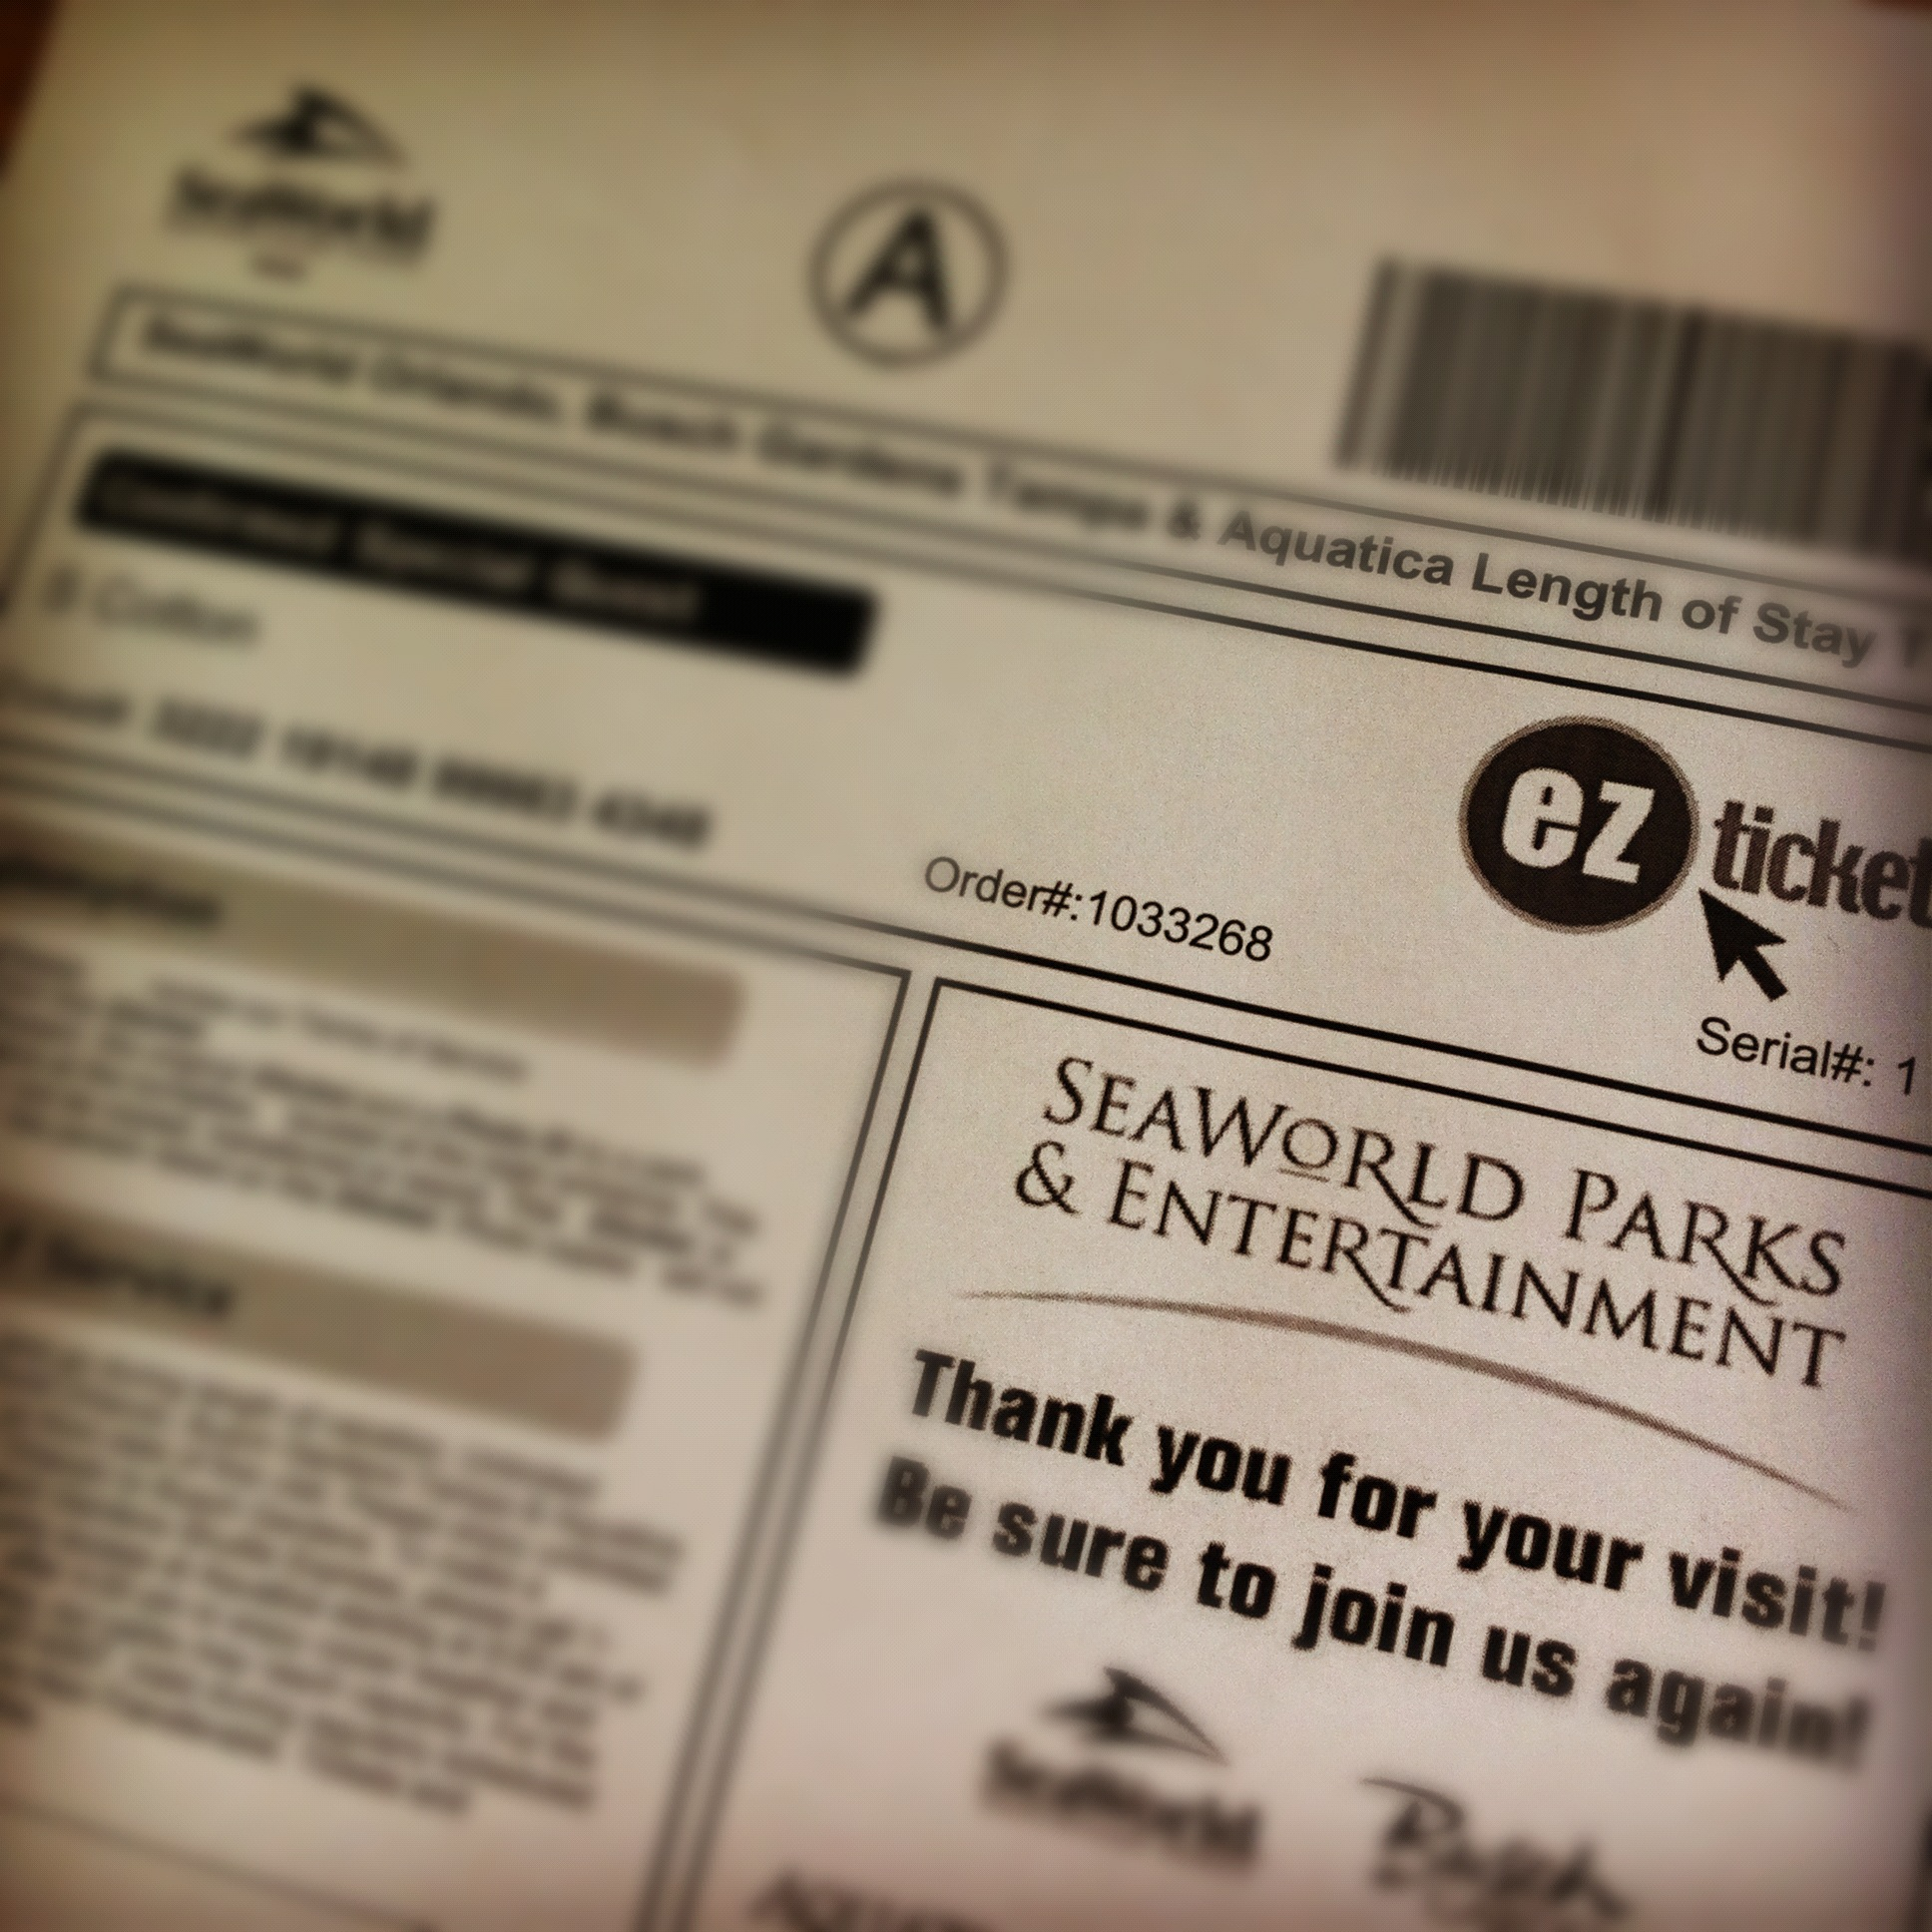 SeaWorld EZTicket